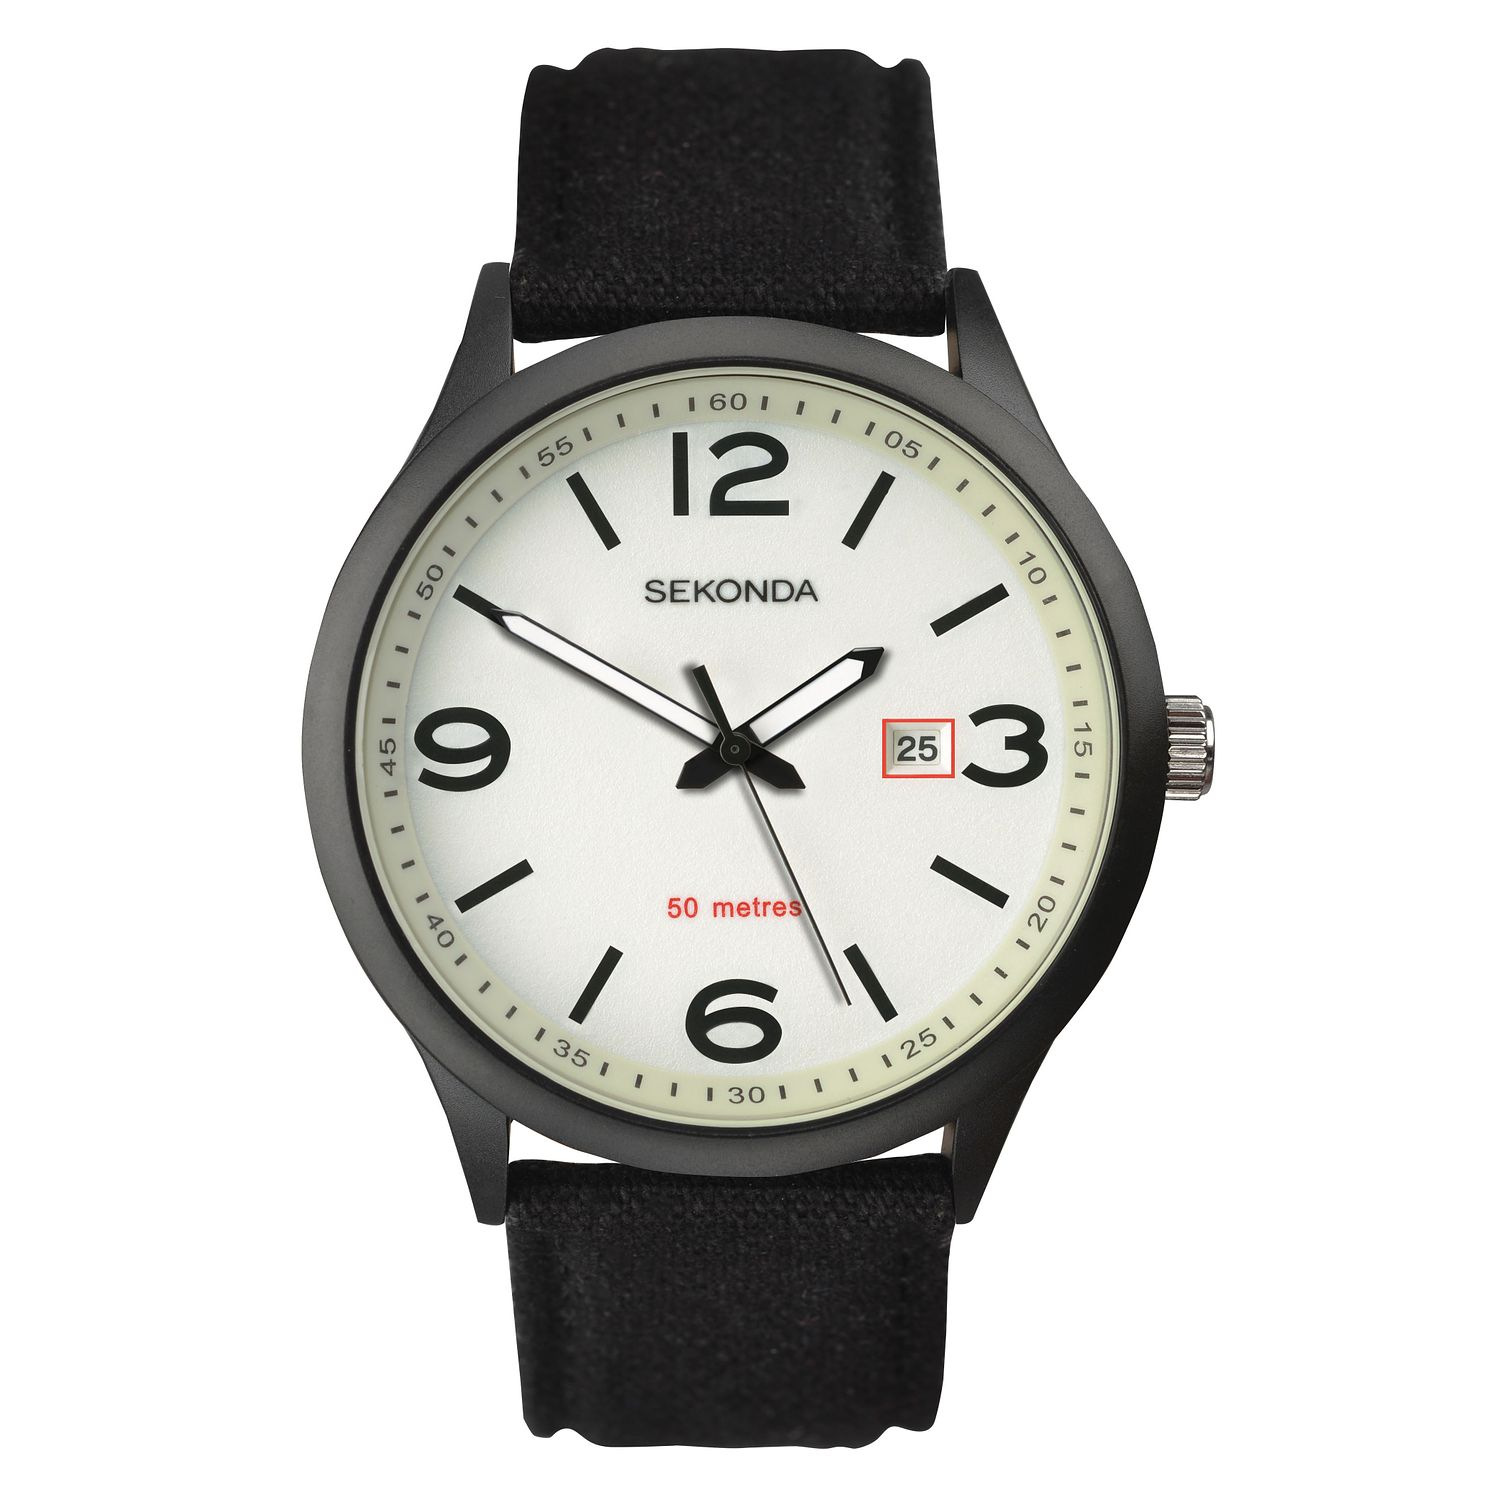 Sekonda Men's Black Nylon Strap Watch - Product number 8602557